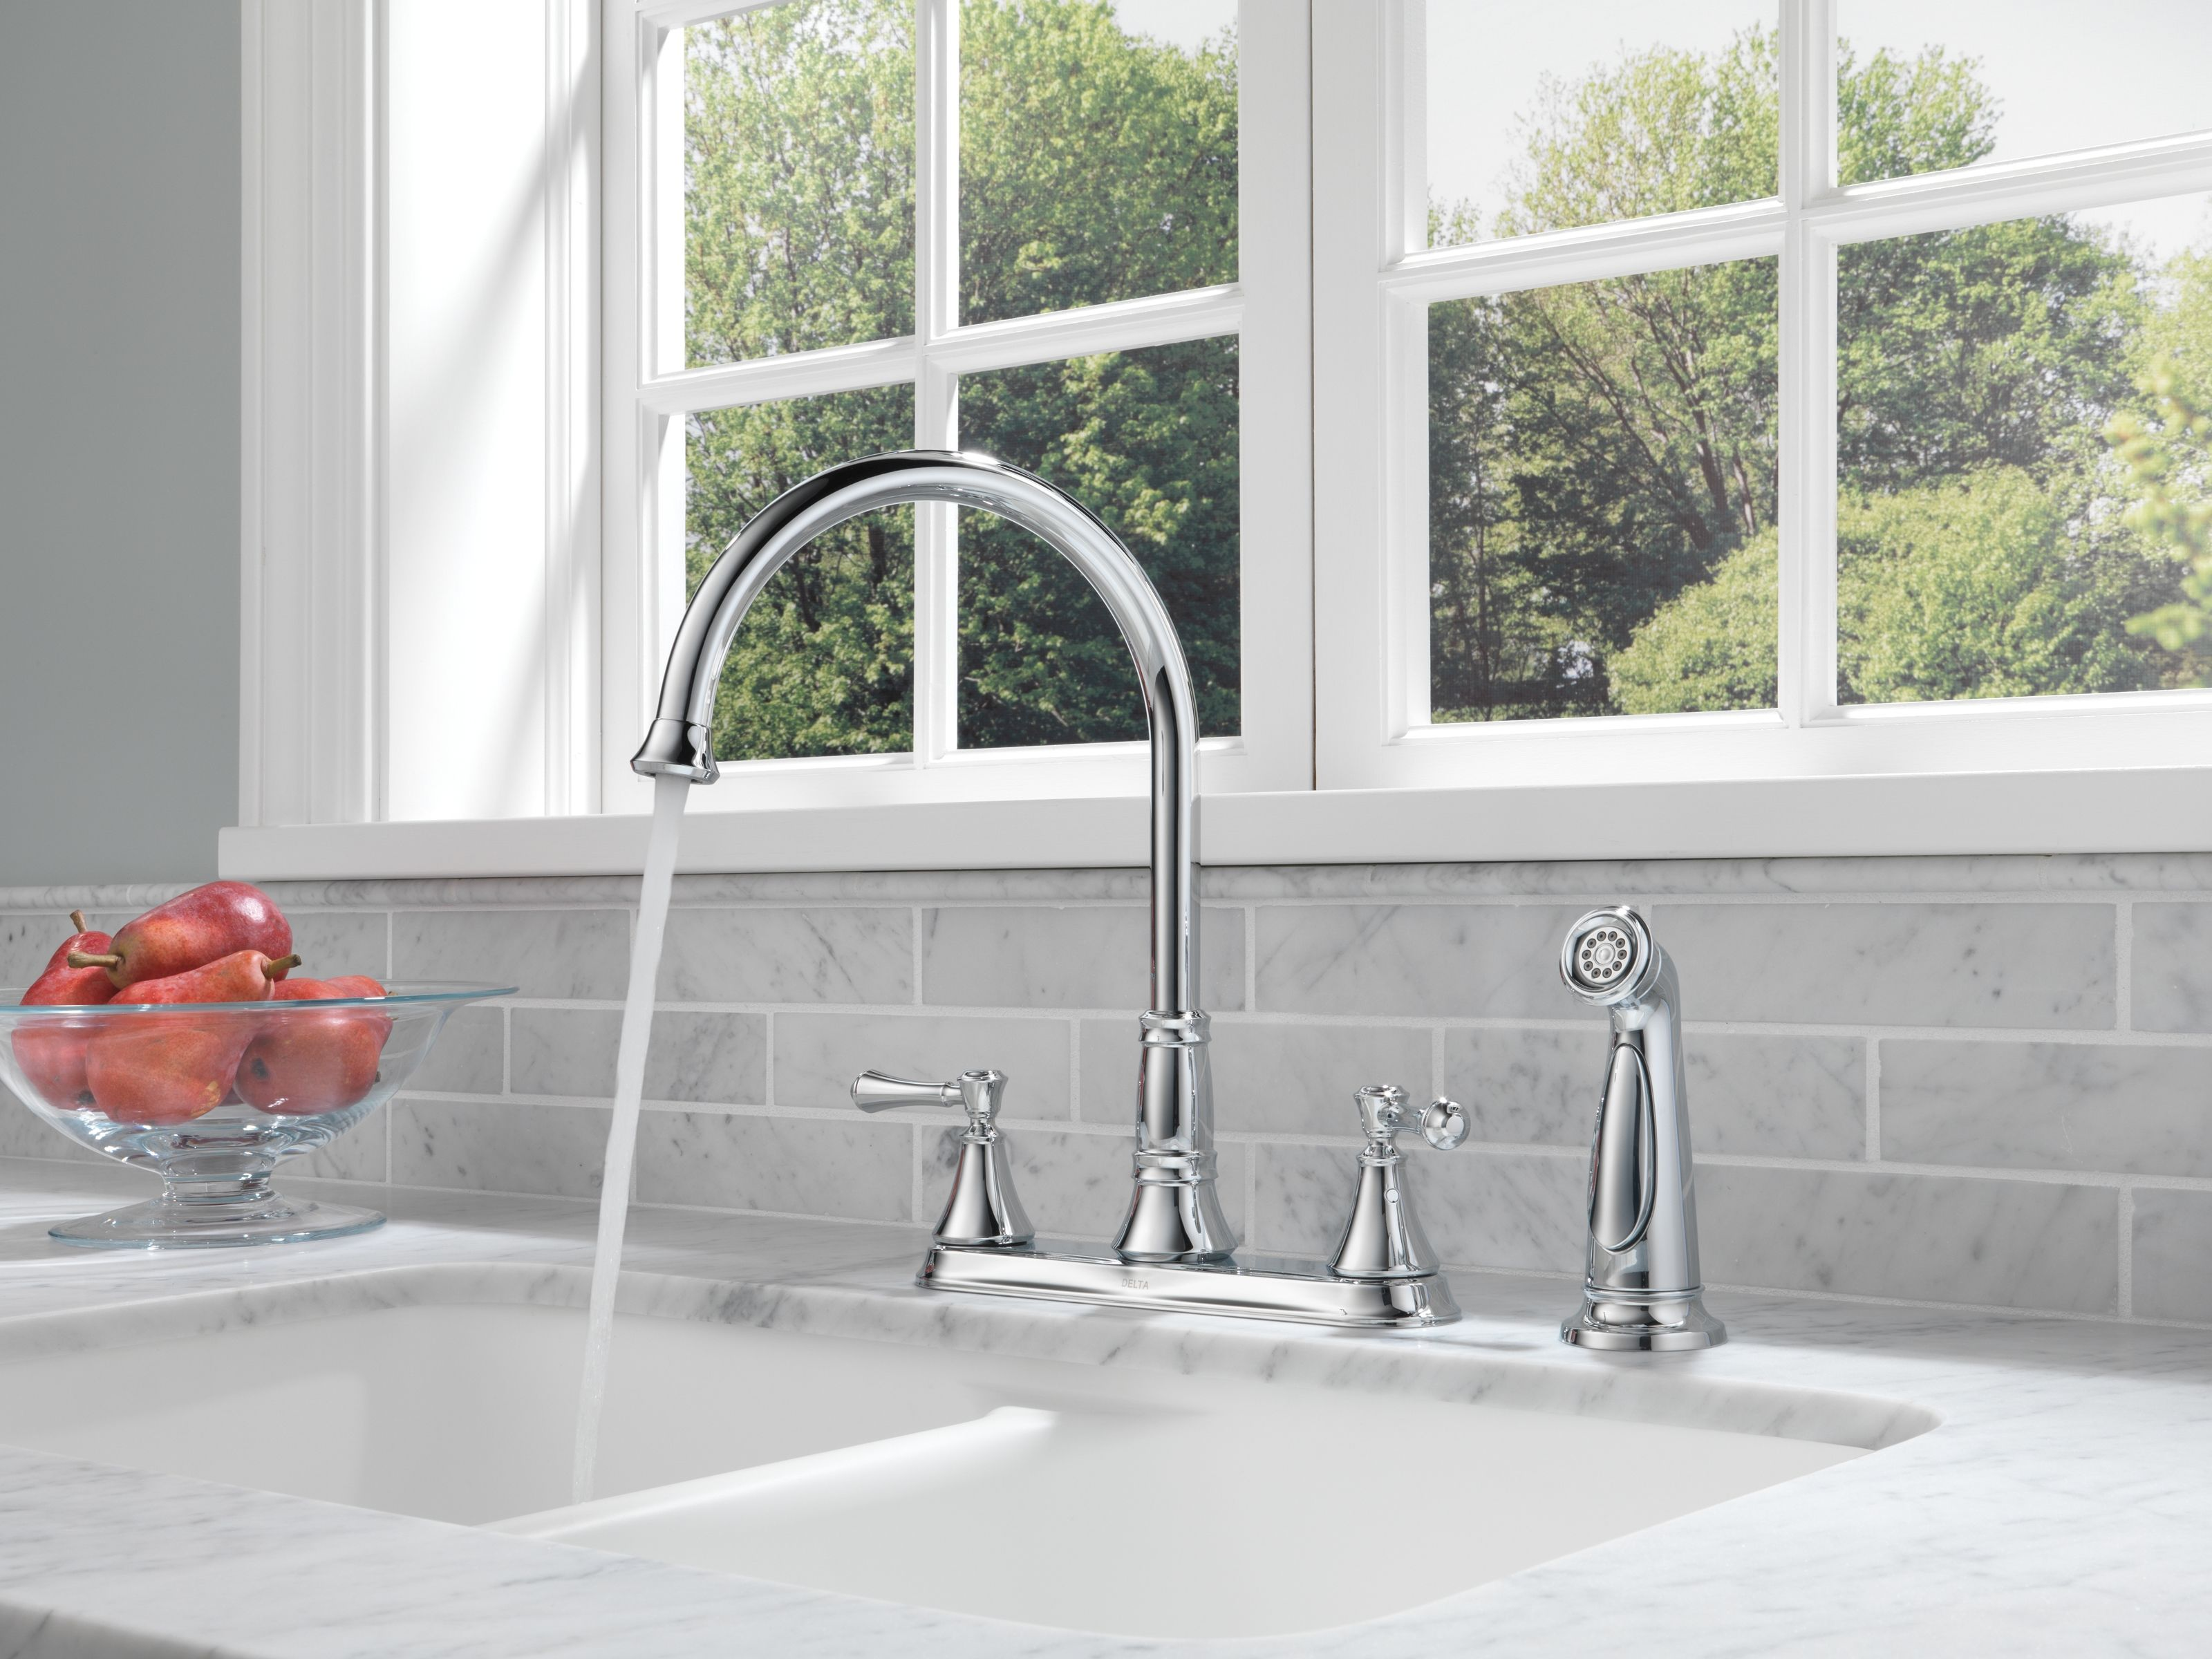 house price cassidy home depot awesome list harmony blog best kitchen faucets of delta faucet